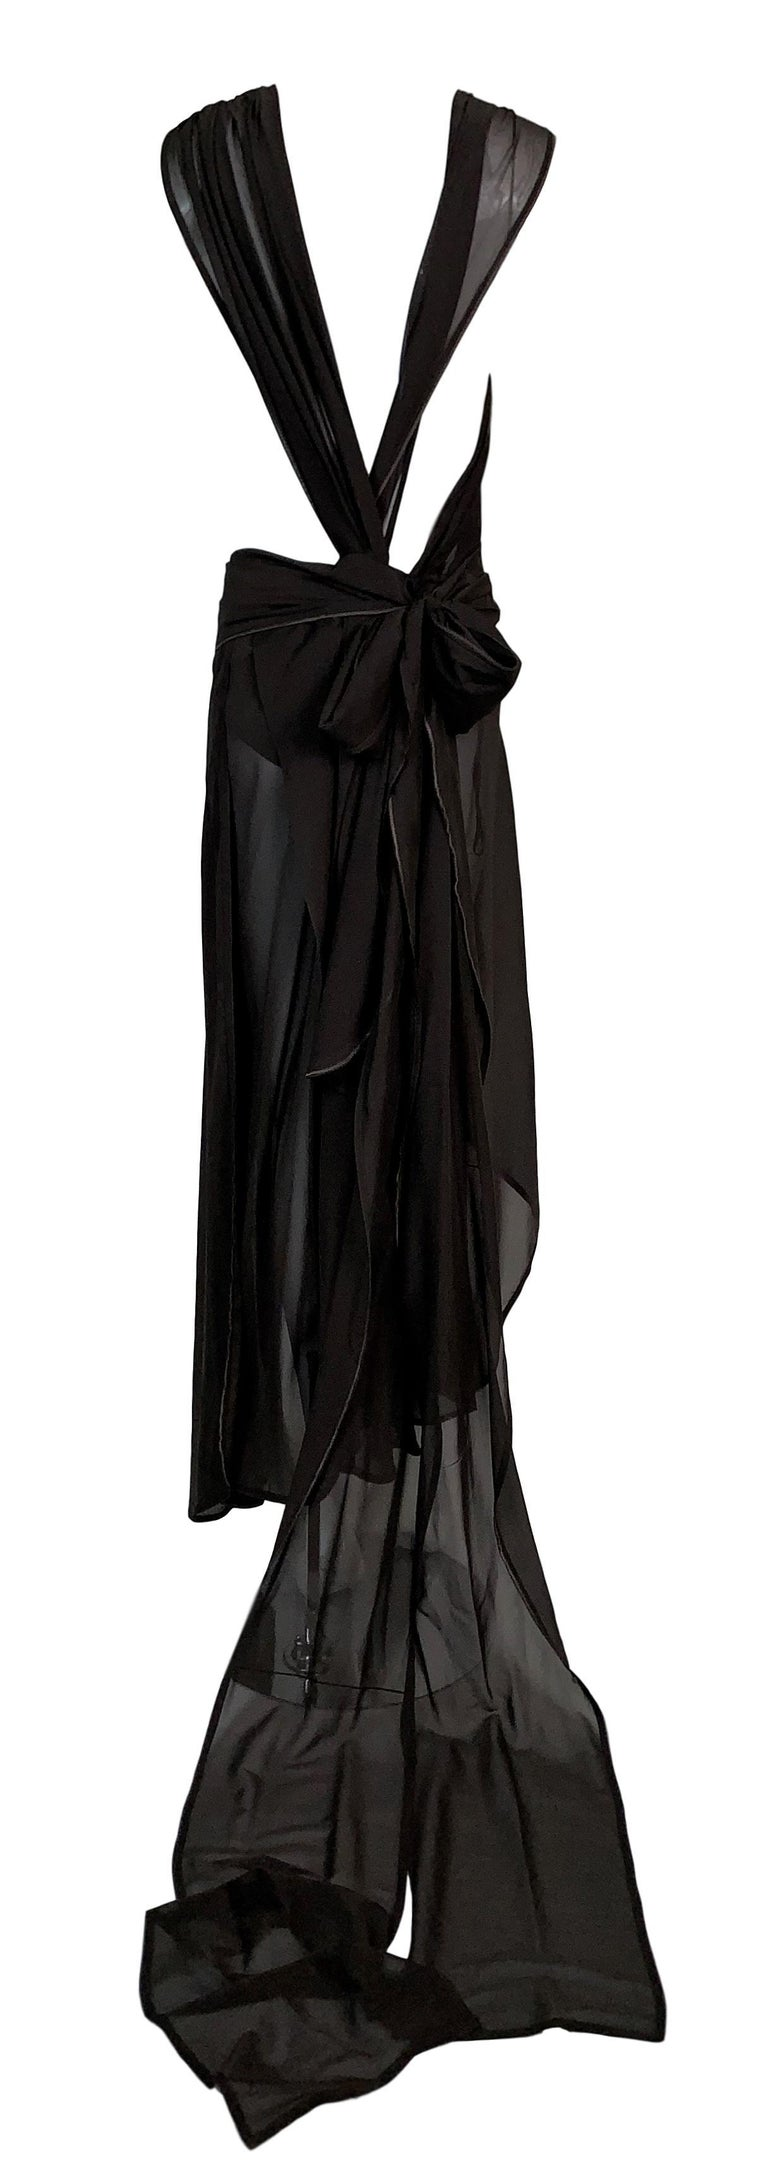 Women's S/S 2002 Yves Saint Laurent Tom Ford Runway Sheer Brown Silk Cut-Out Dress For Sale